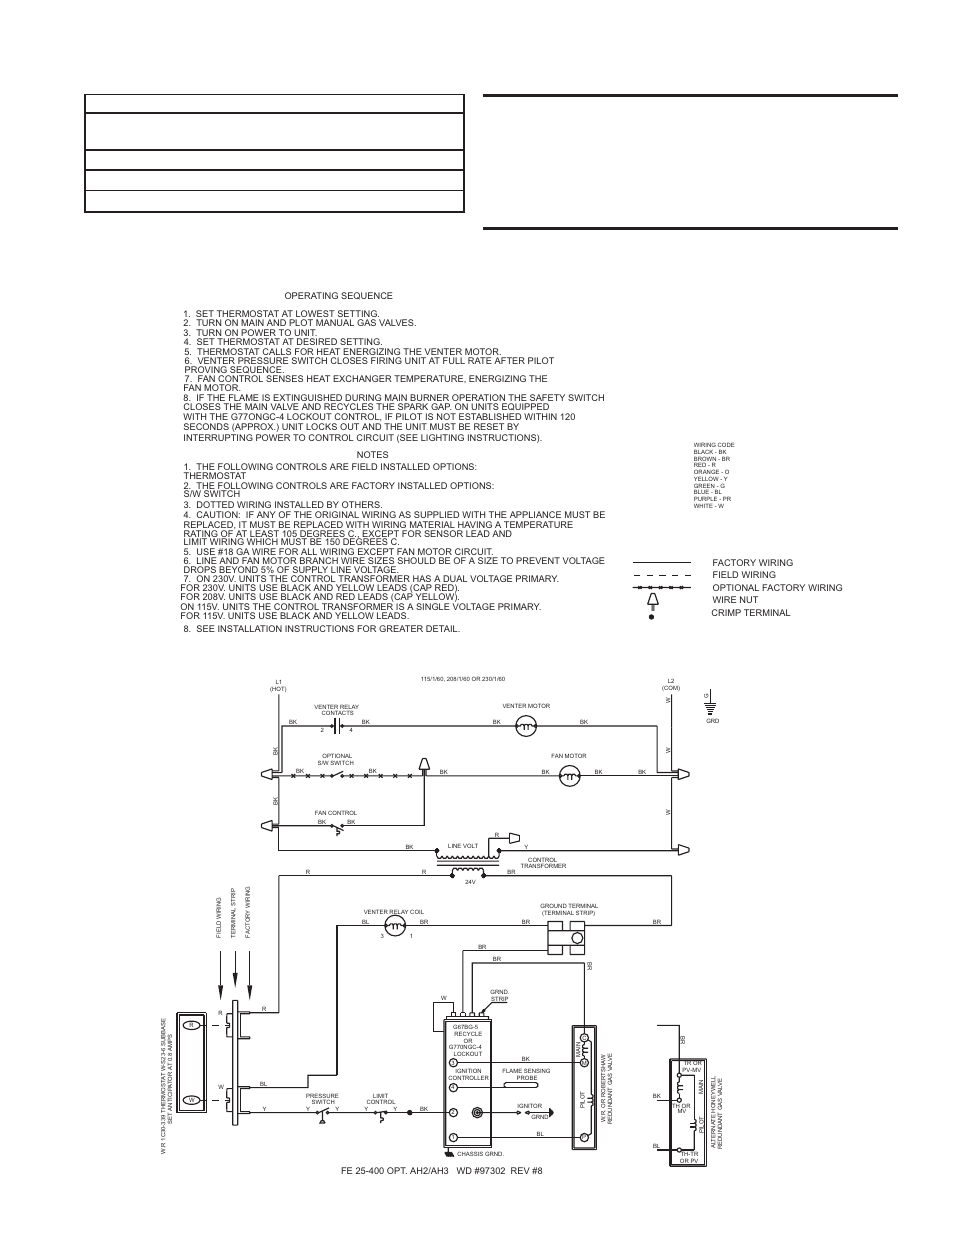 Typical wiring diagrams -- pages 13 - 16 | Reznor BE Unit Installation  Manual User Manual | Page 14 / 29